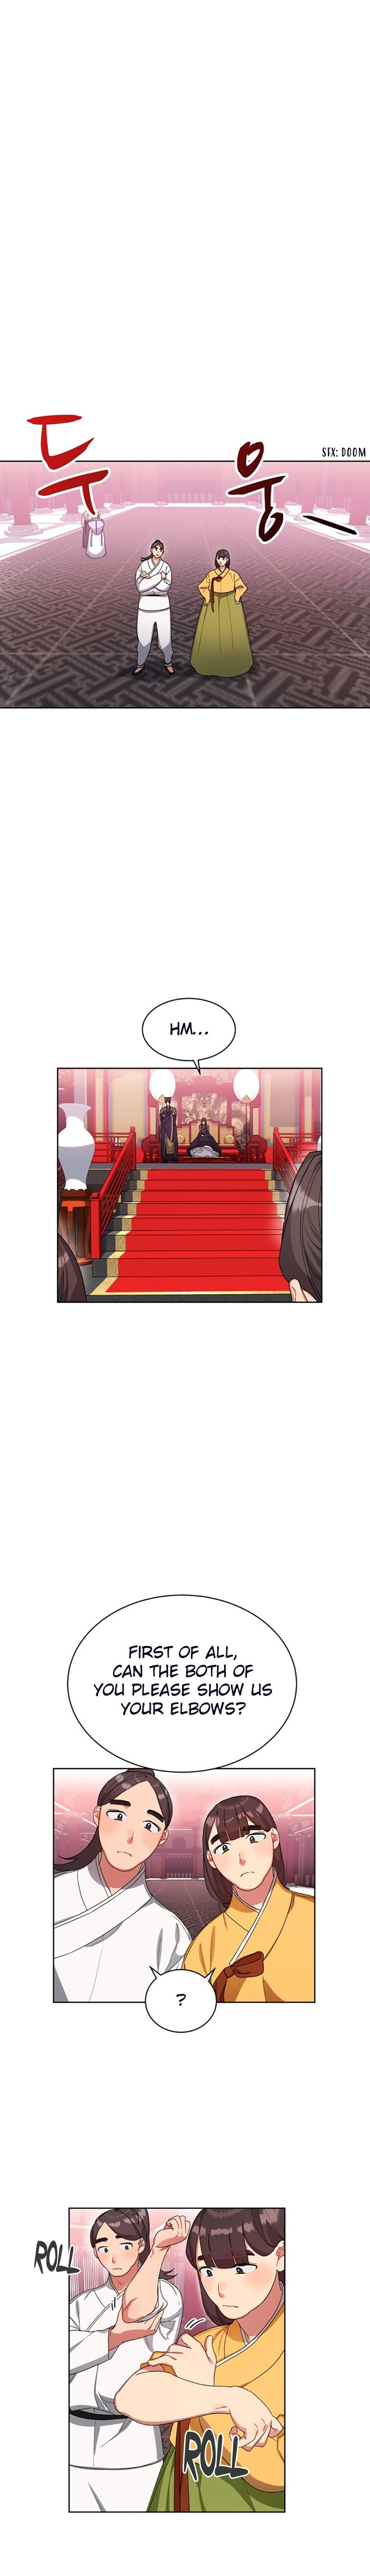 What Kind of Empress Is This - chapter 15 - #3